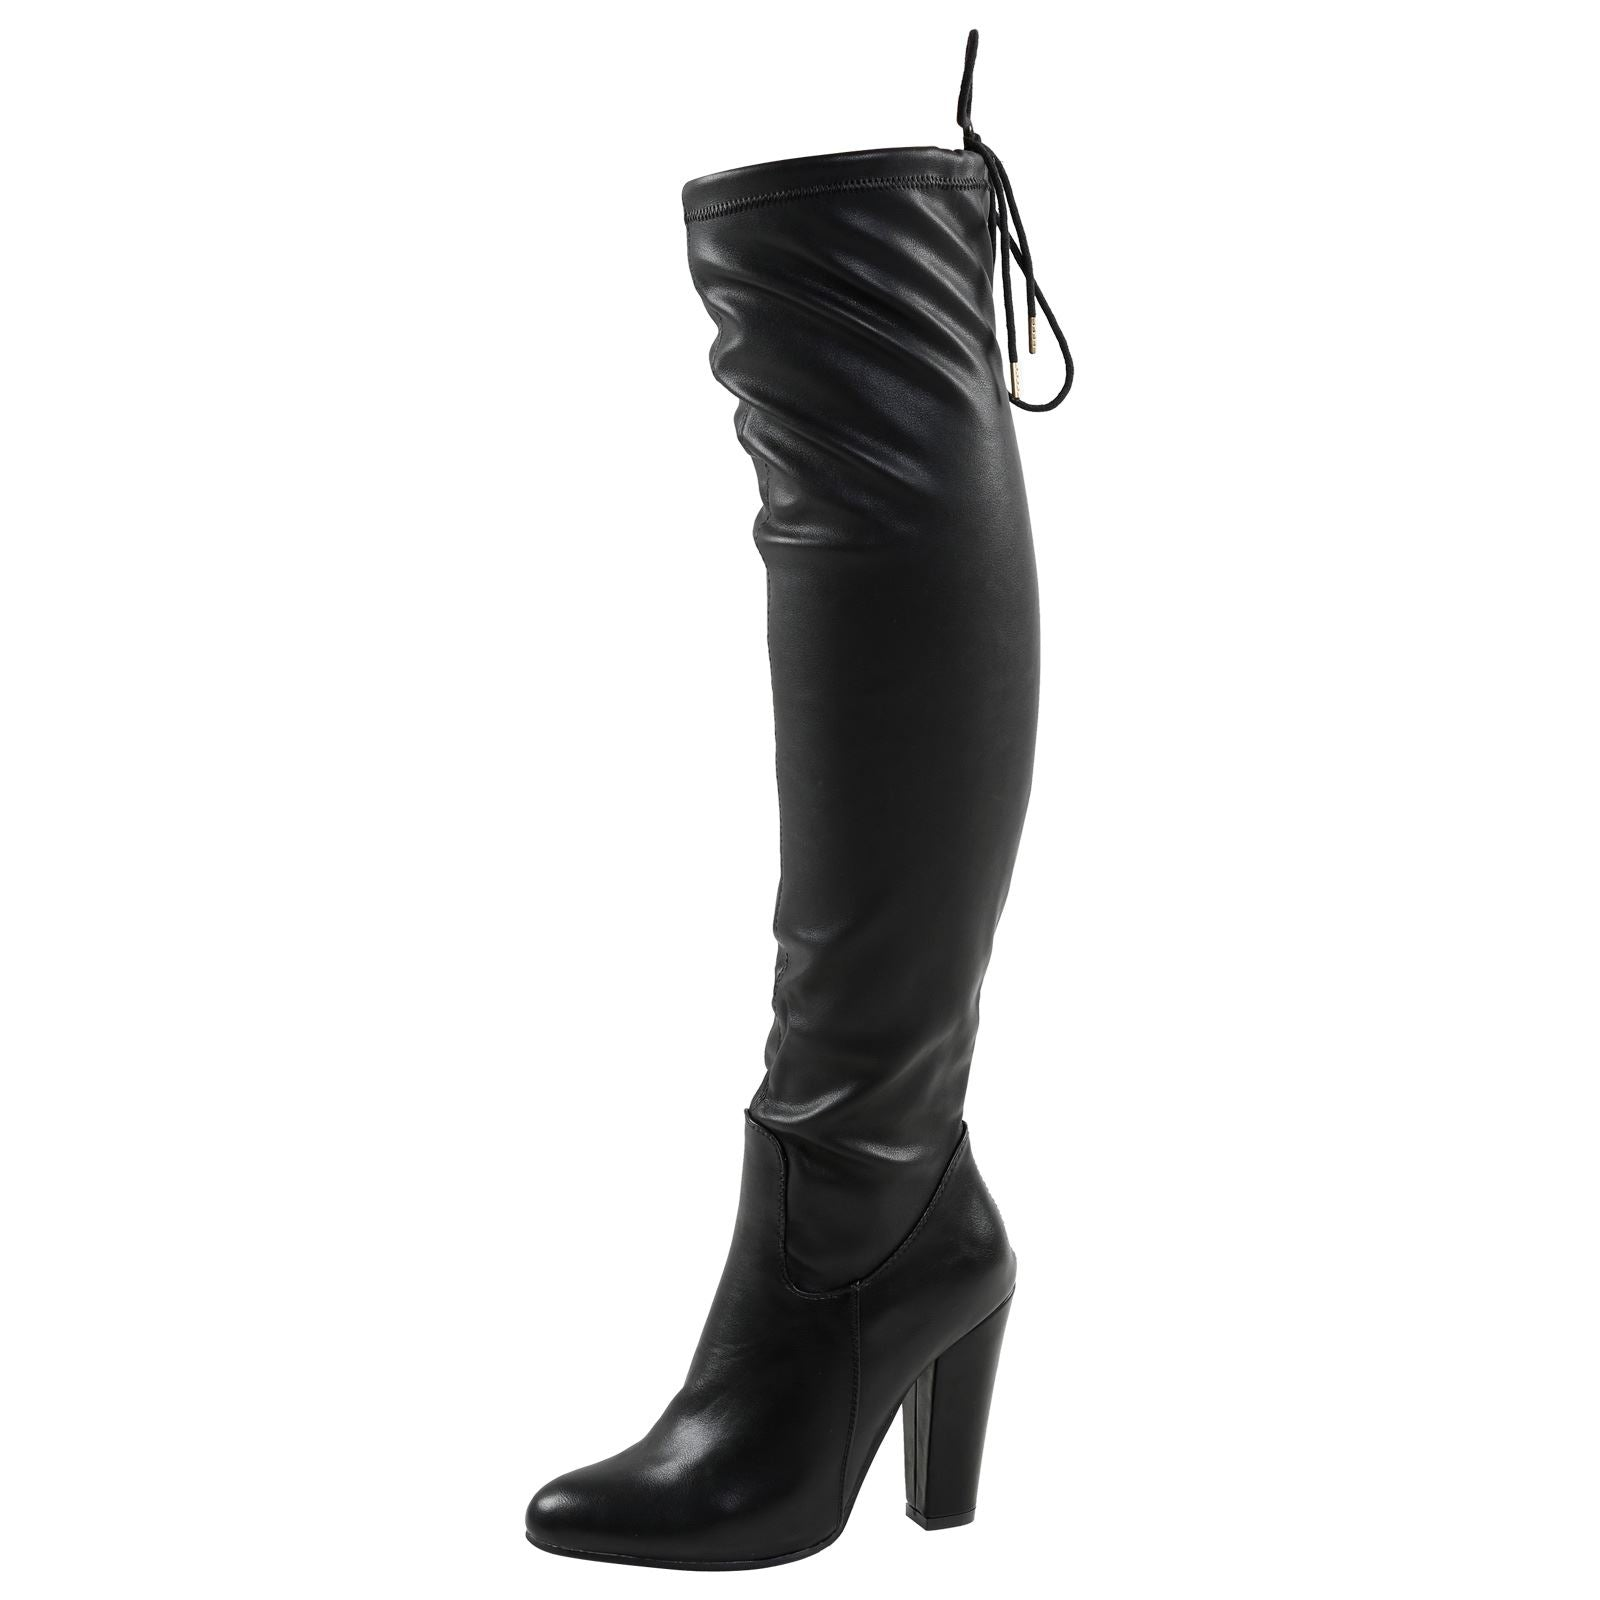 Cathy Tie Top Over the Knee Boots in Black Faux Leather